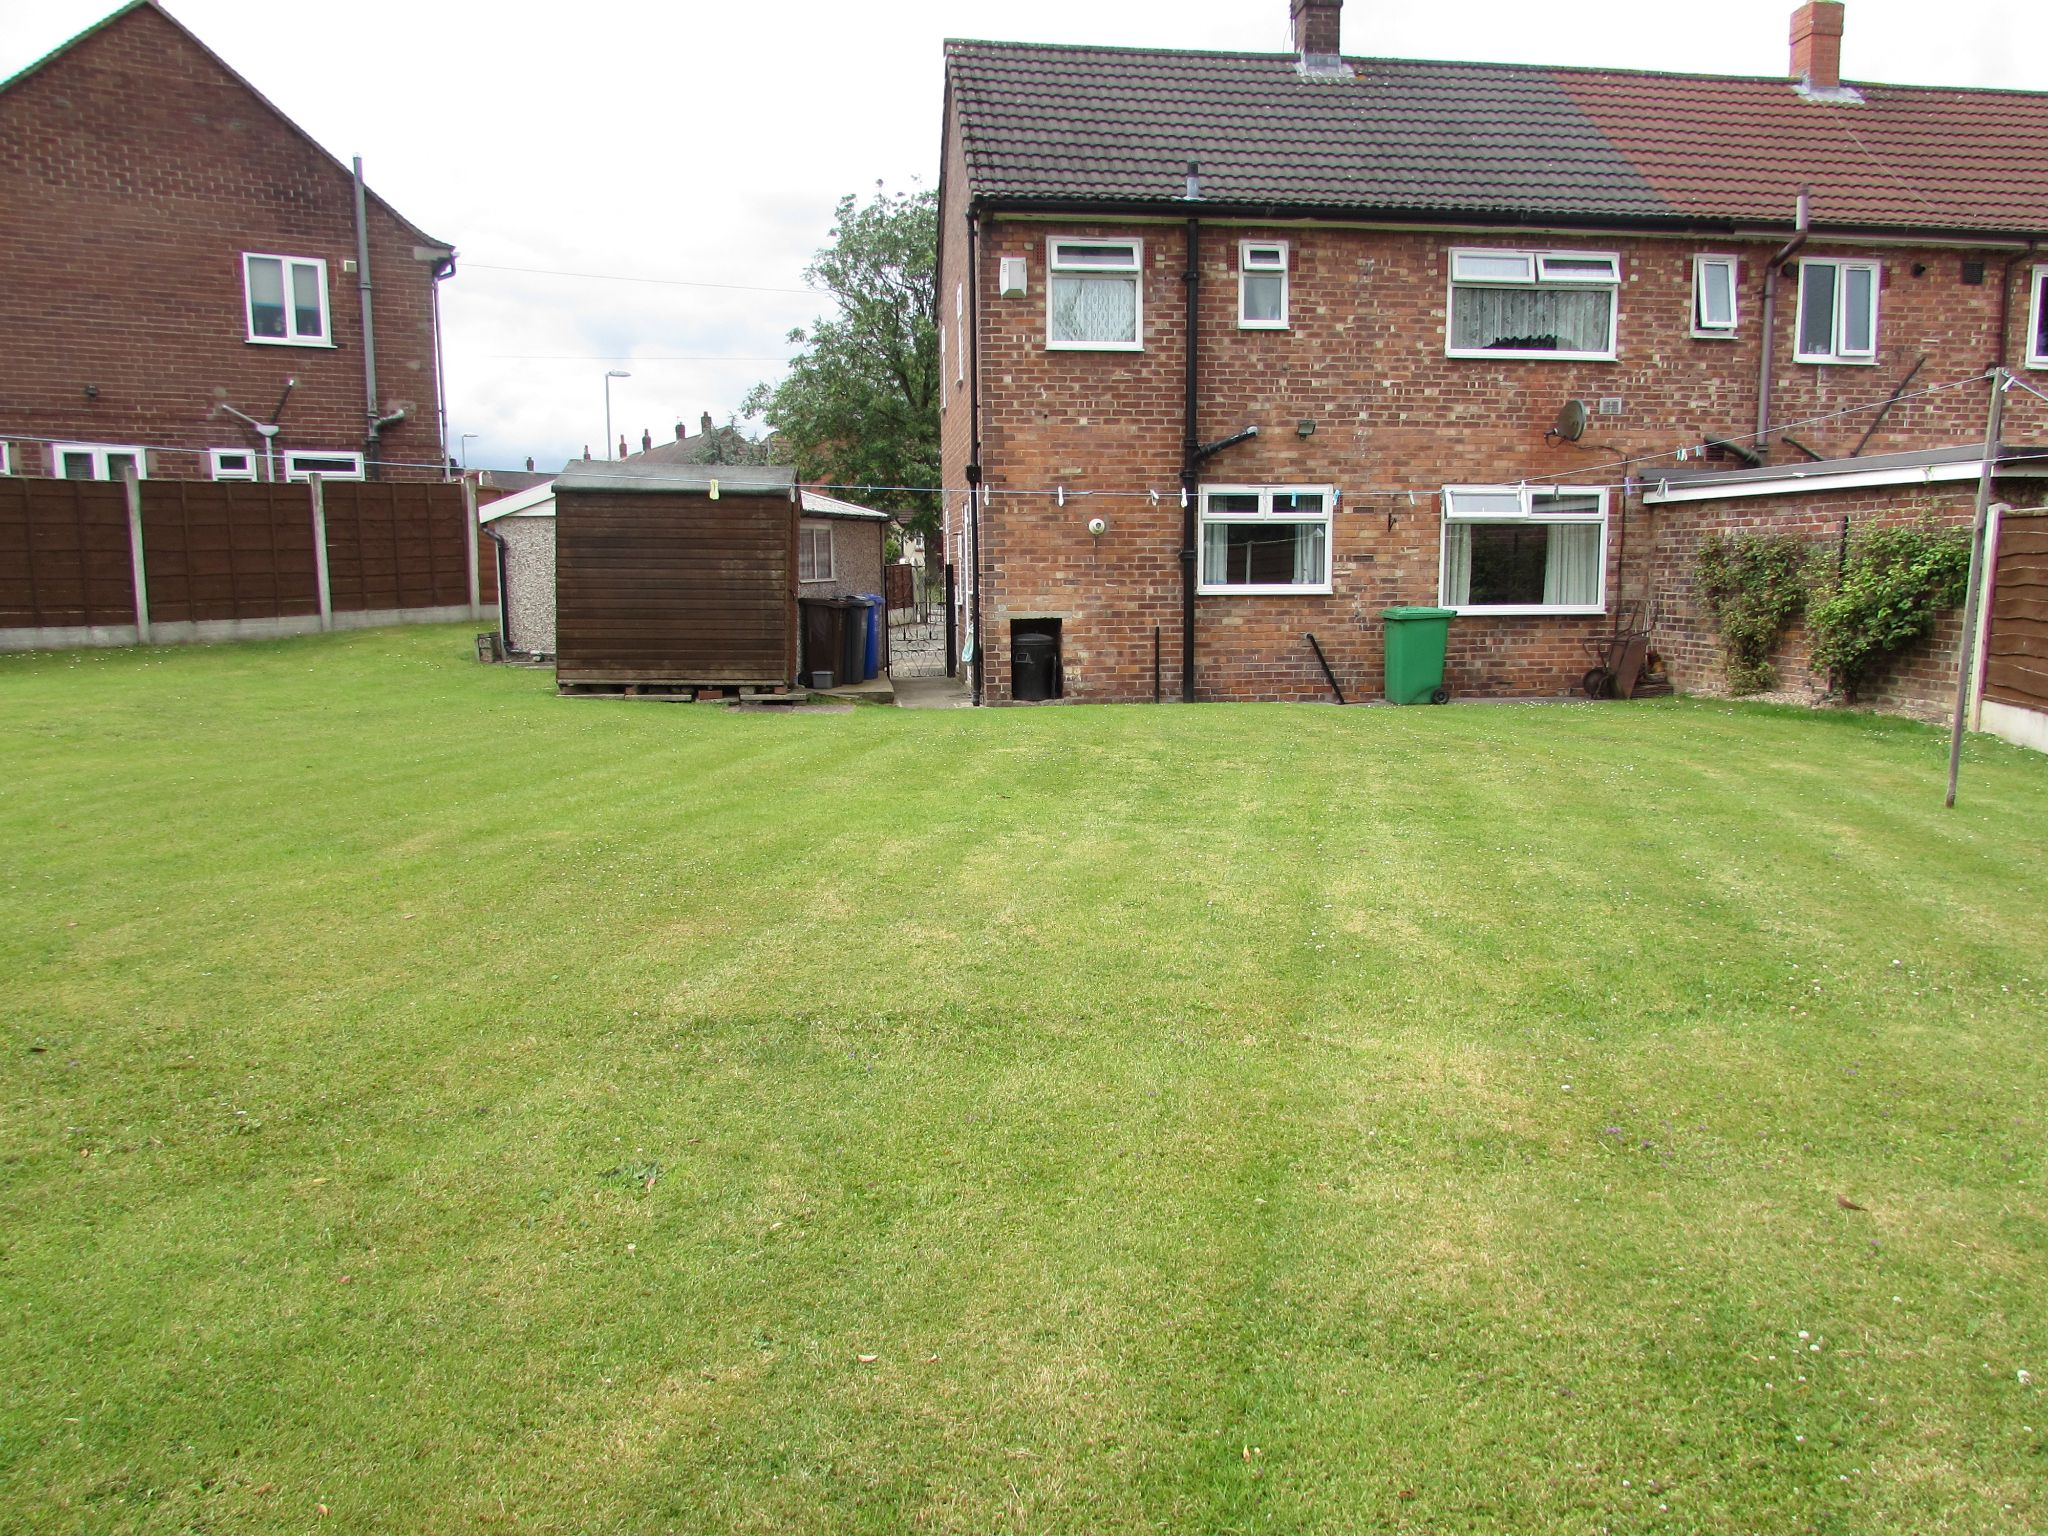 3 Bedroom End Terraced House For Sale - LARGE REAR GARDEN